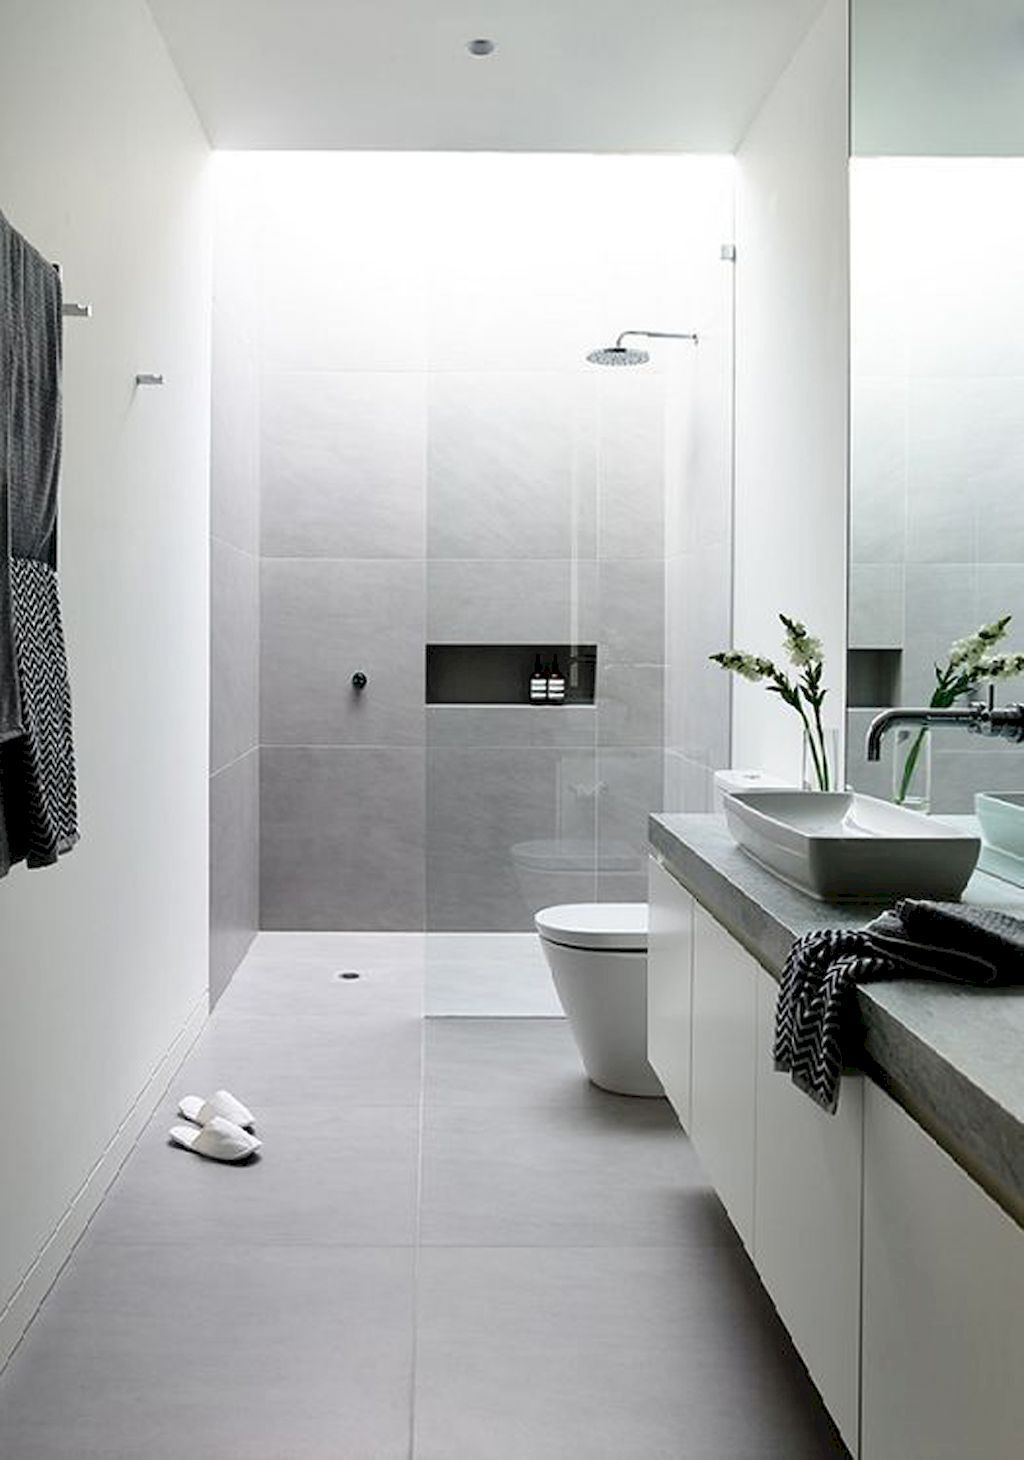 80 Inexpensive Bathroom Remodeling Ideas | Pinterest | Remodeling ...